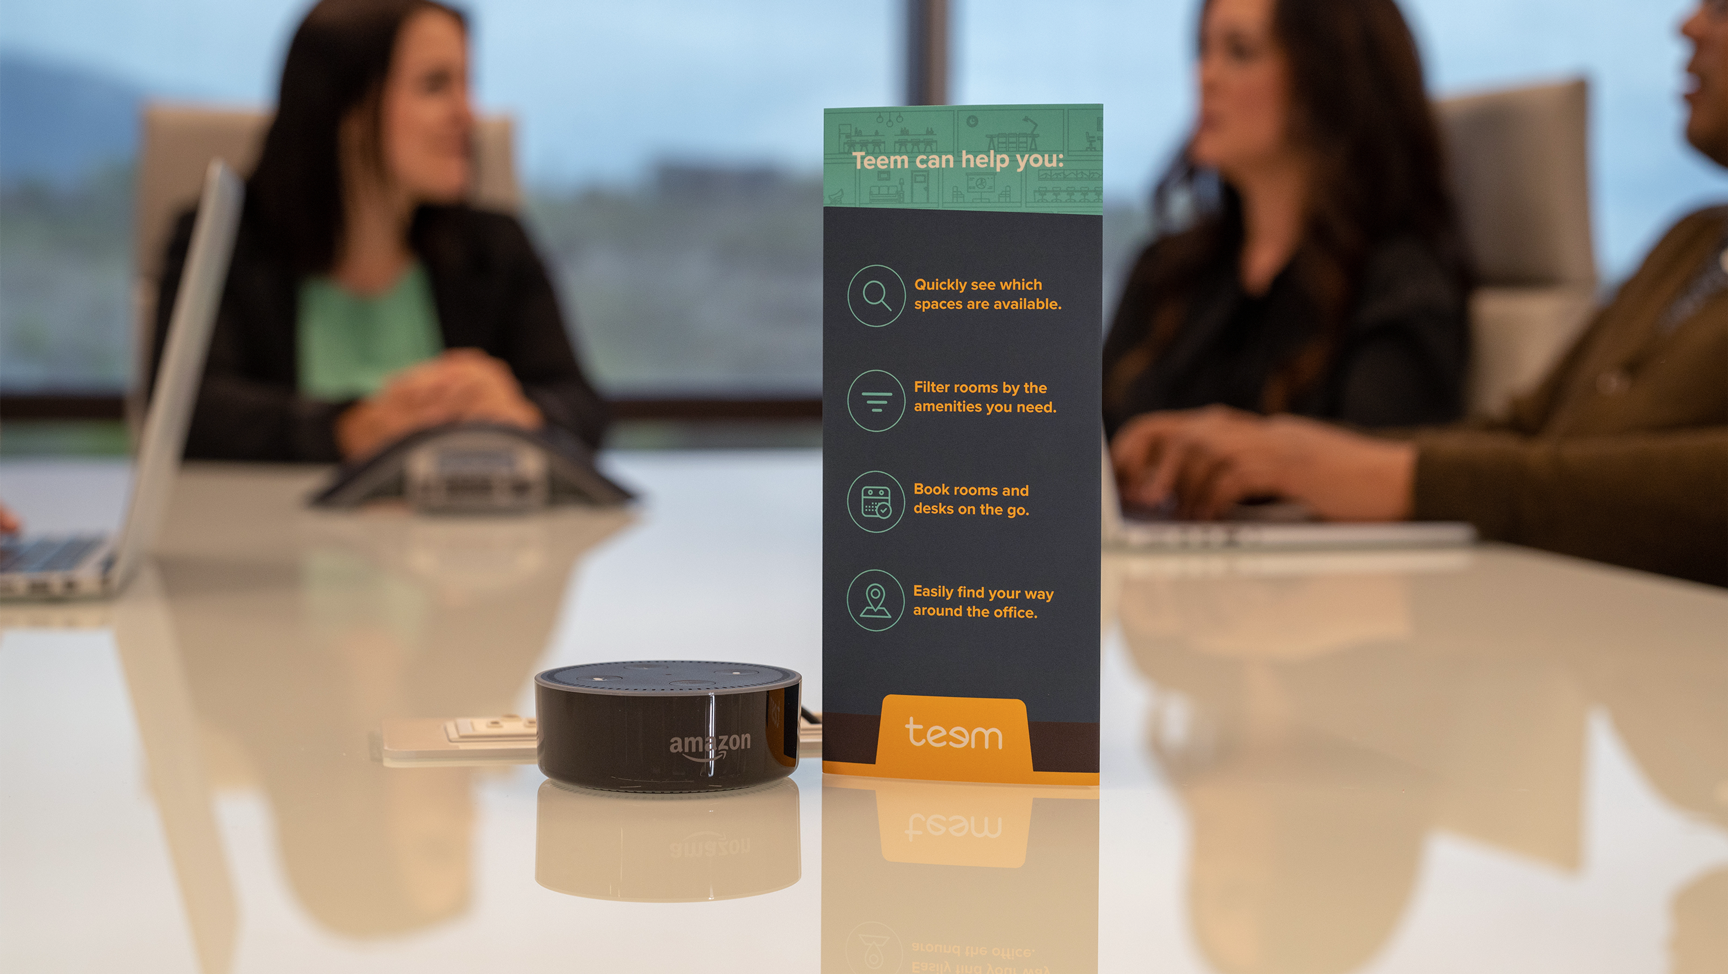 Alexa can now reserve conference rooms - letsthinkeasy com